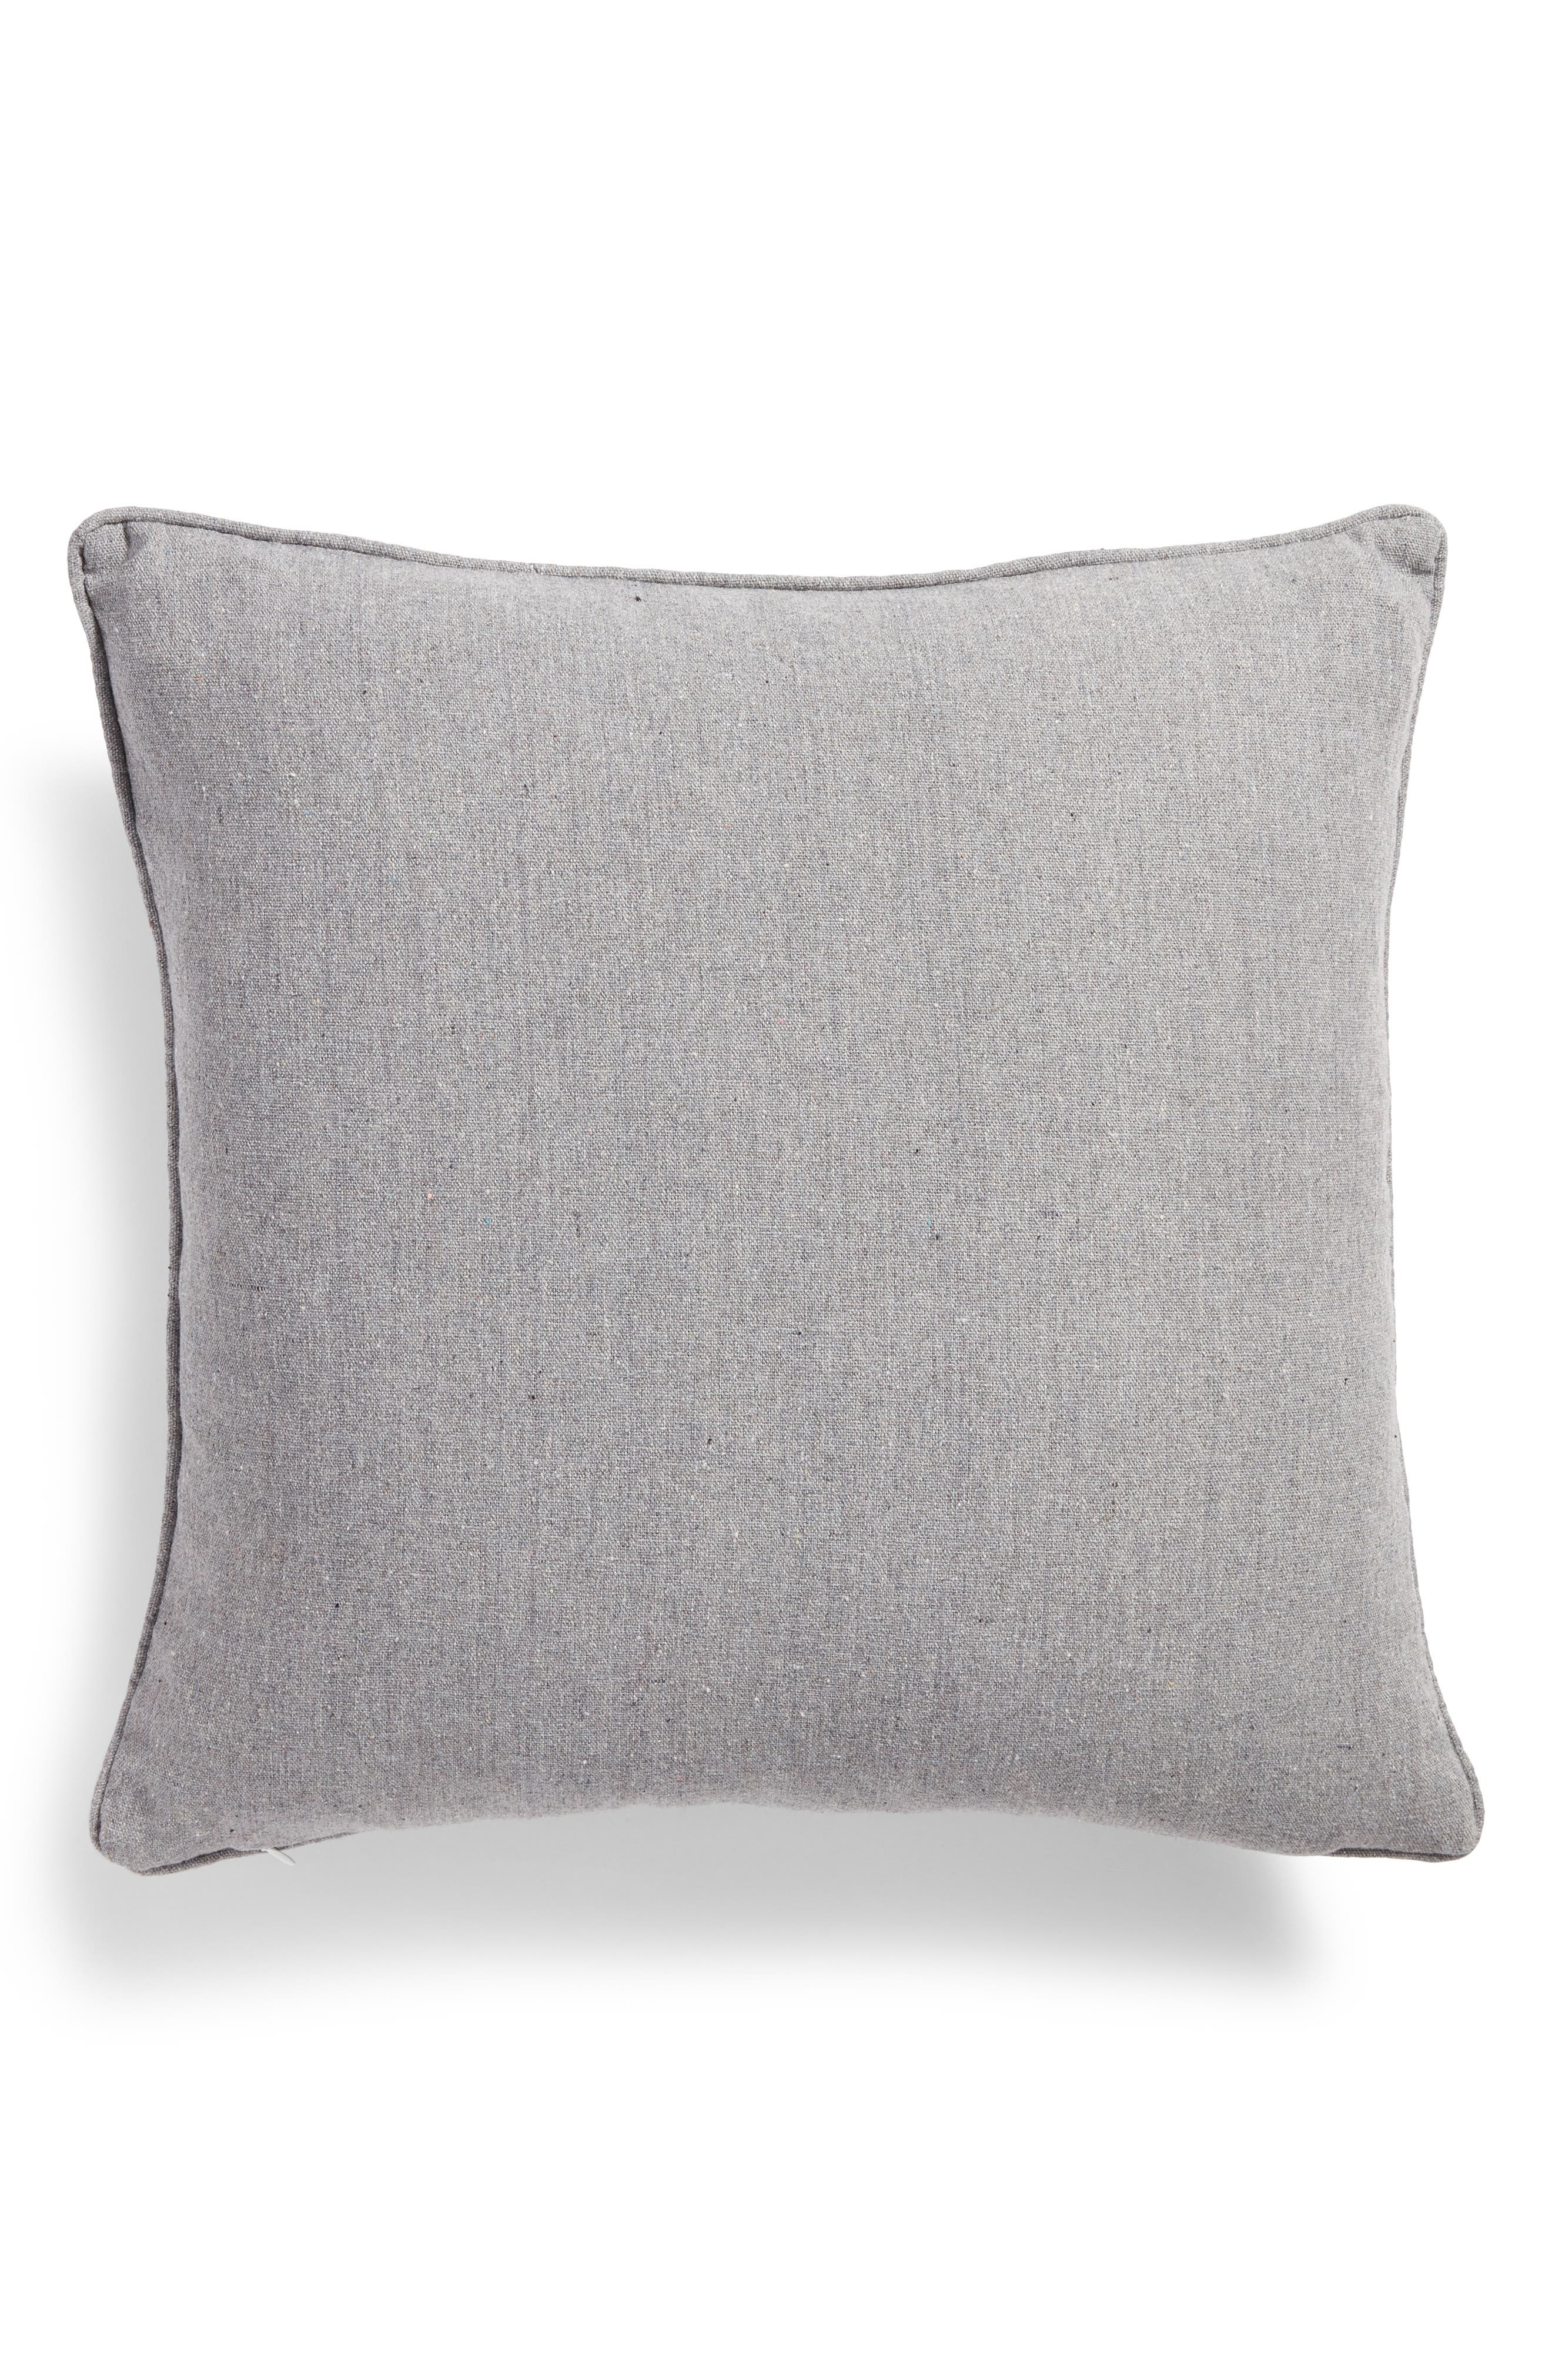 Big Dill Accent Pillow,                             Alternate thumbnail 2, color,                             020